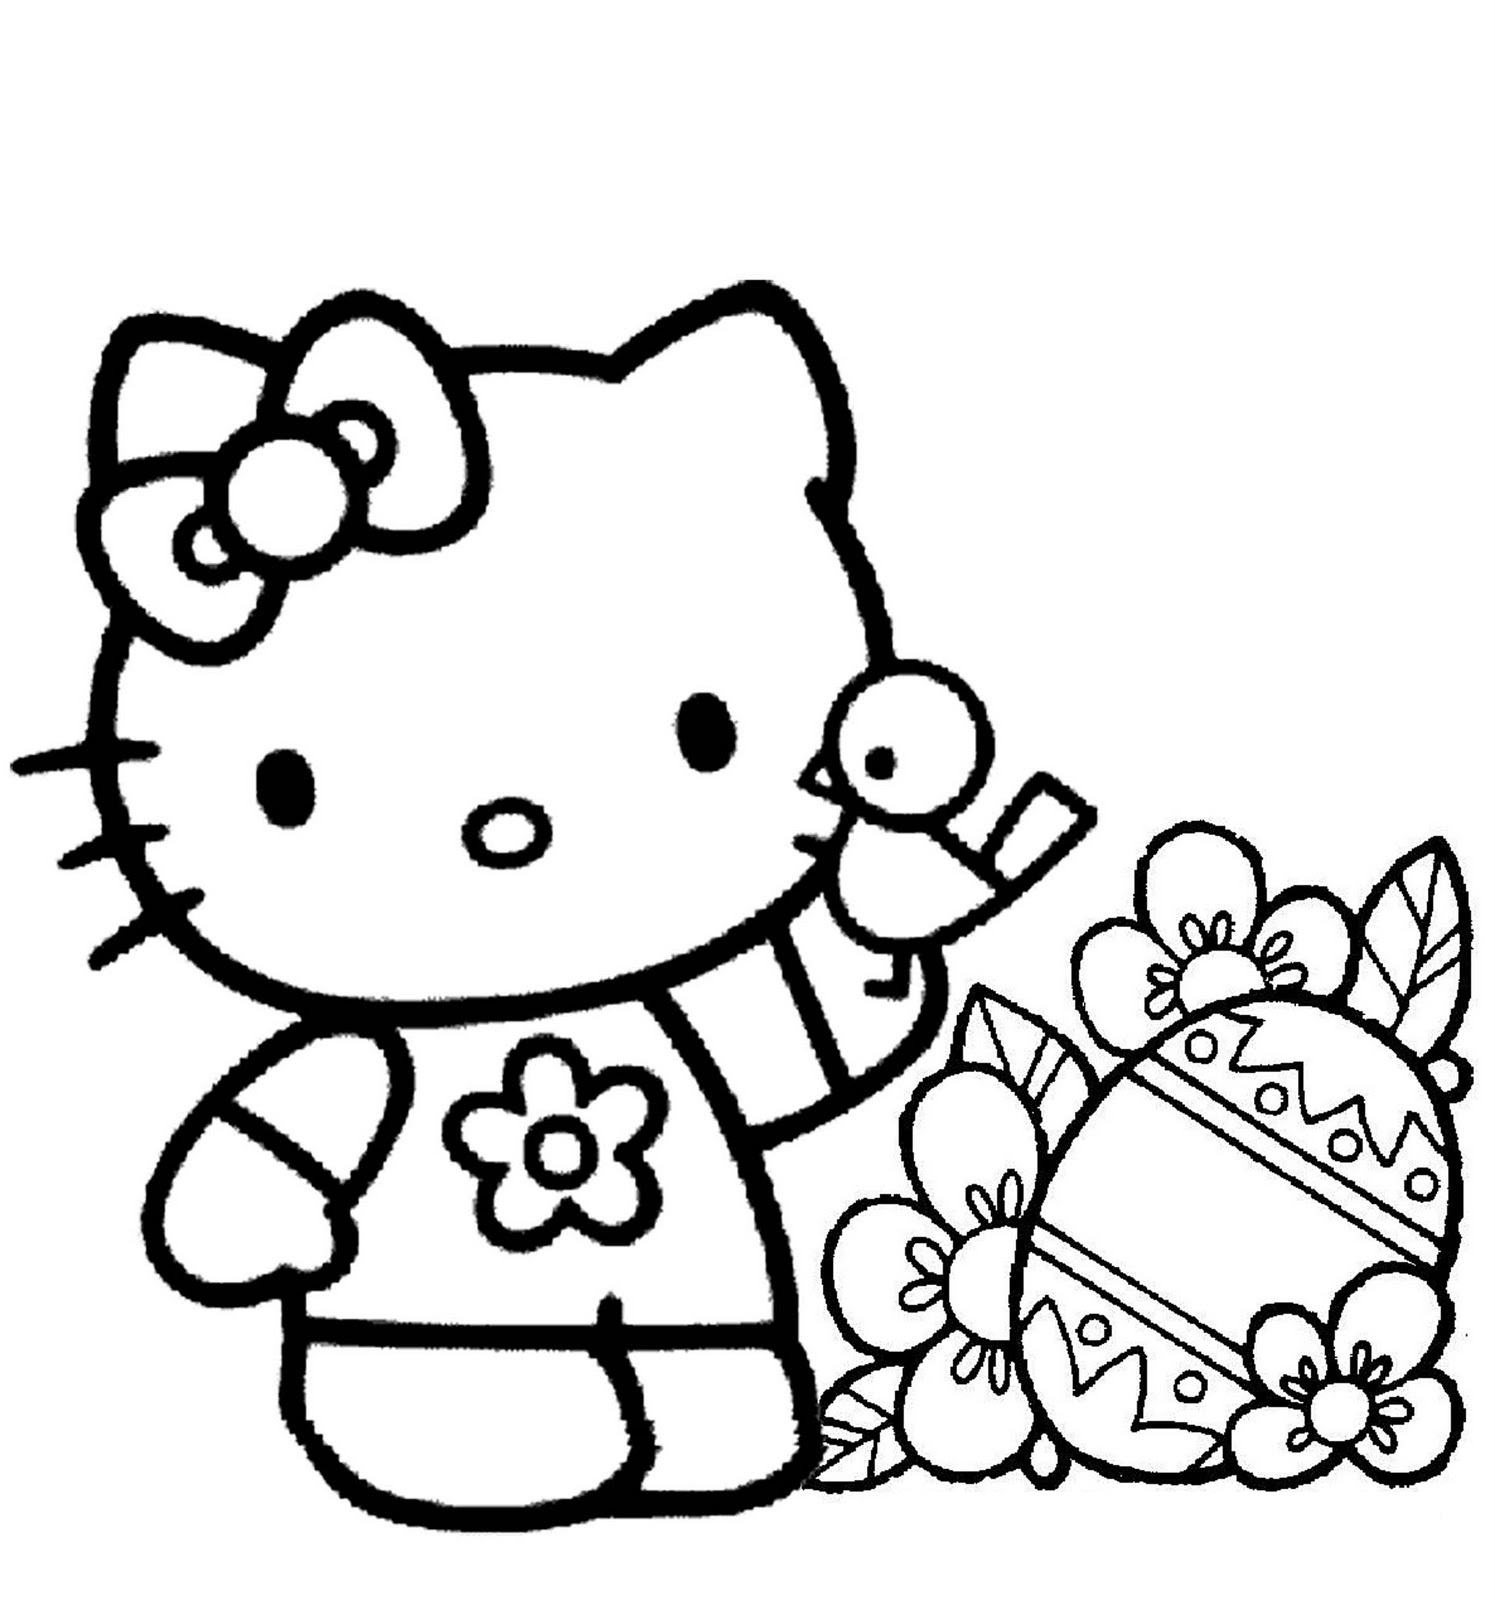 1495x1600 Free Printable Hello Kitty Coloring Pages For Kids